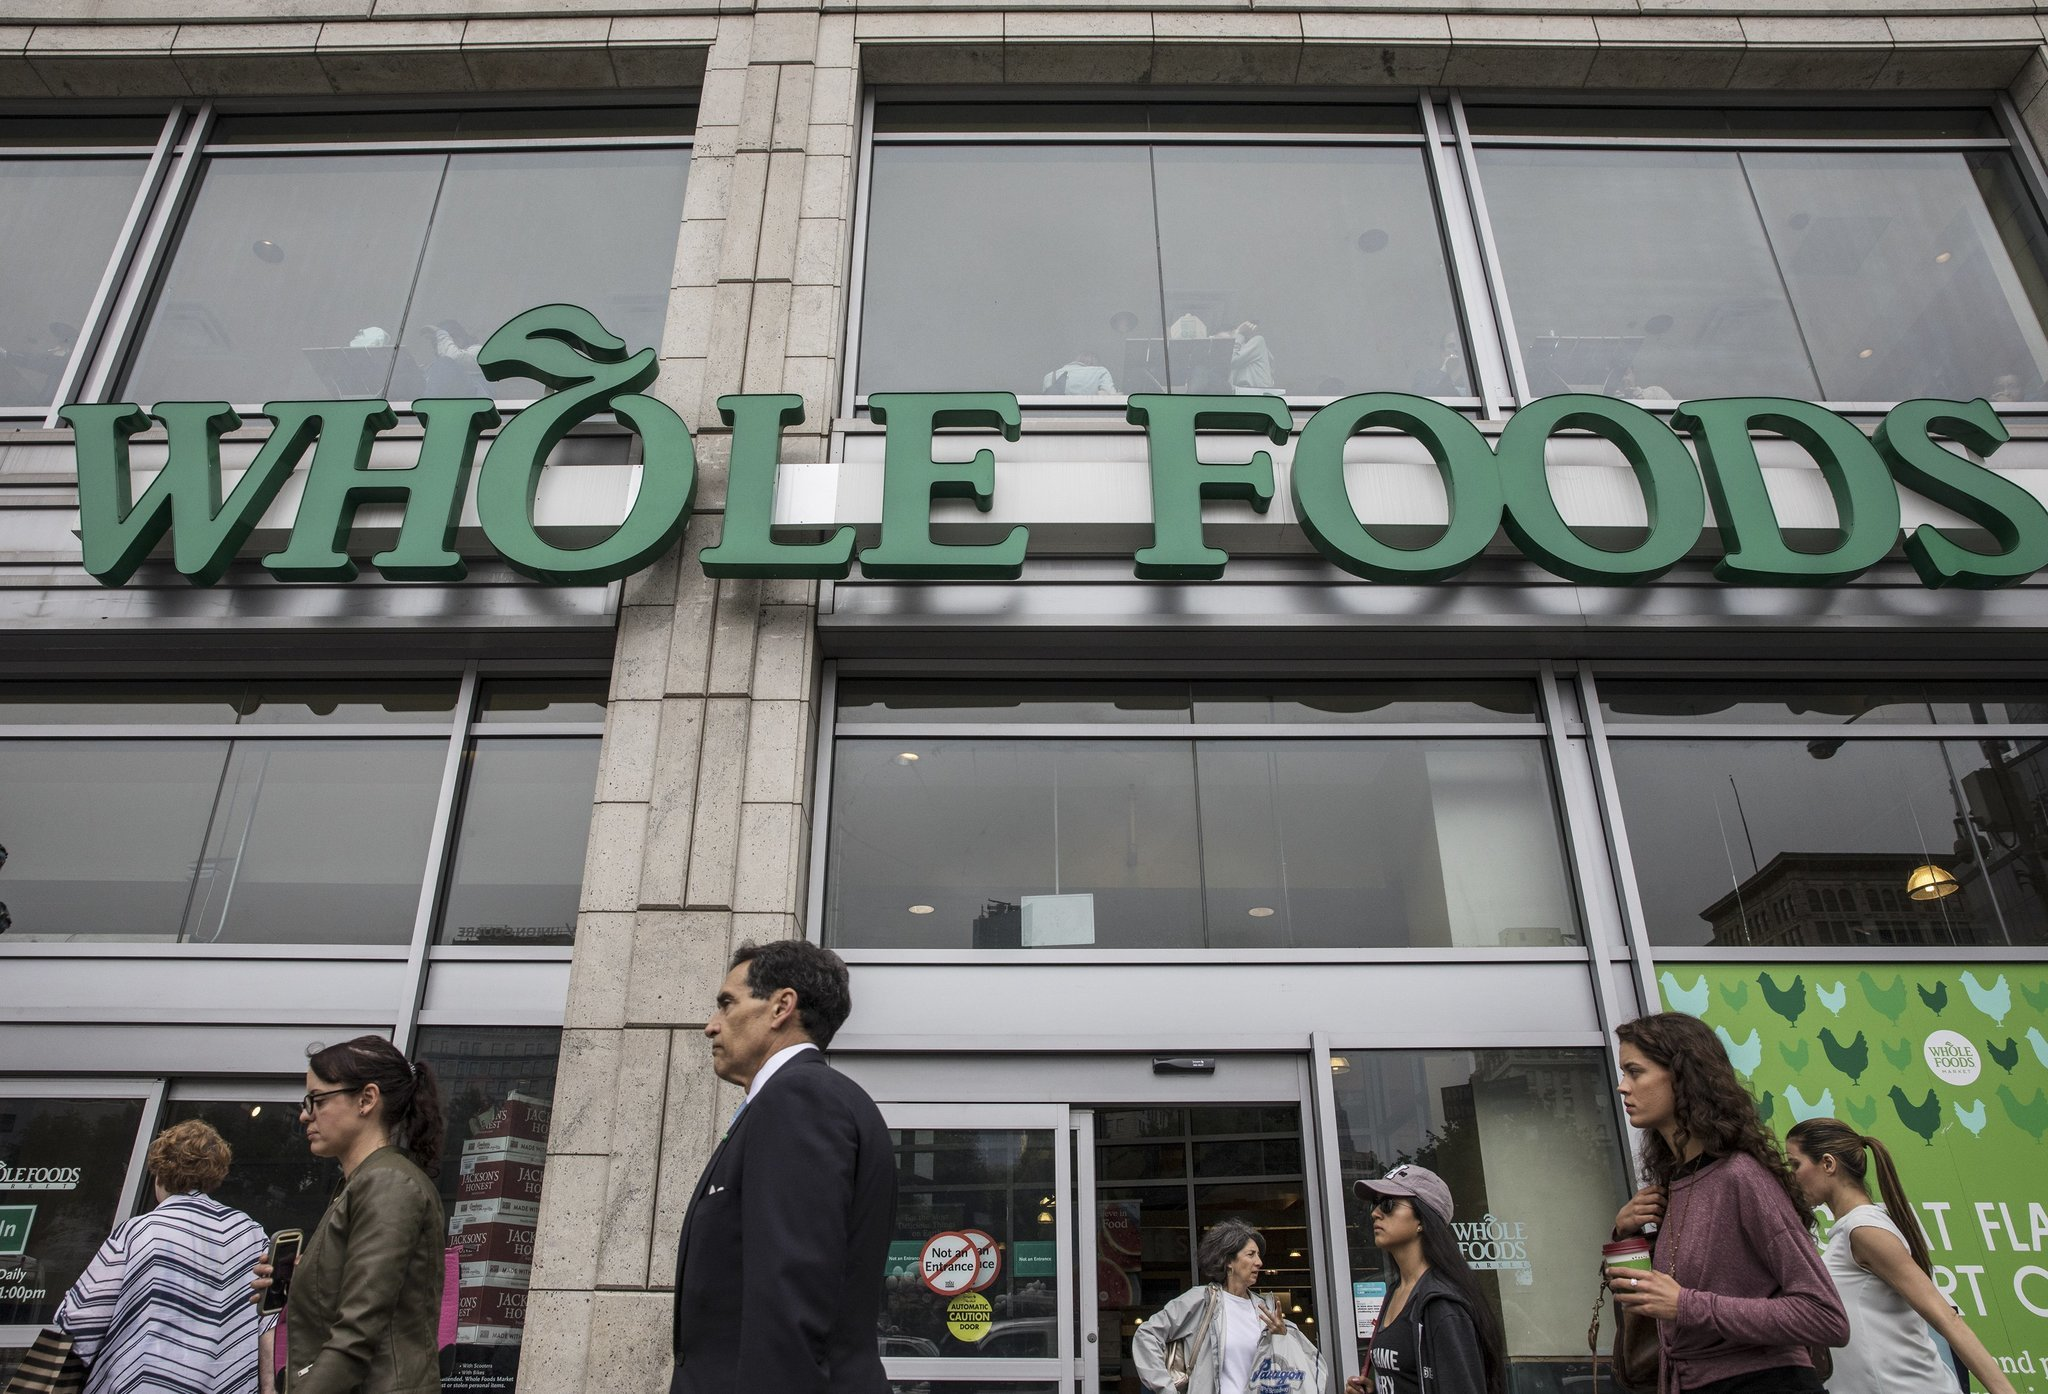 After 3 Years Town Board Finally Approves Whole Foods Project In